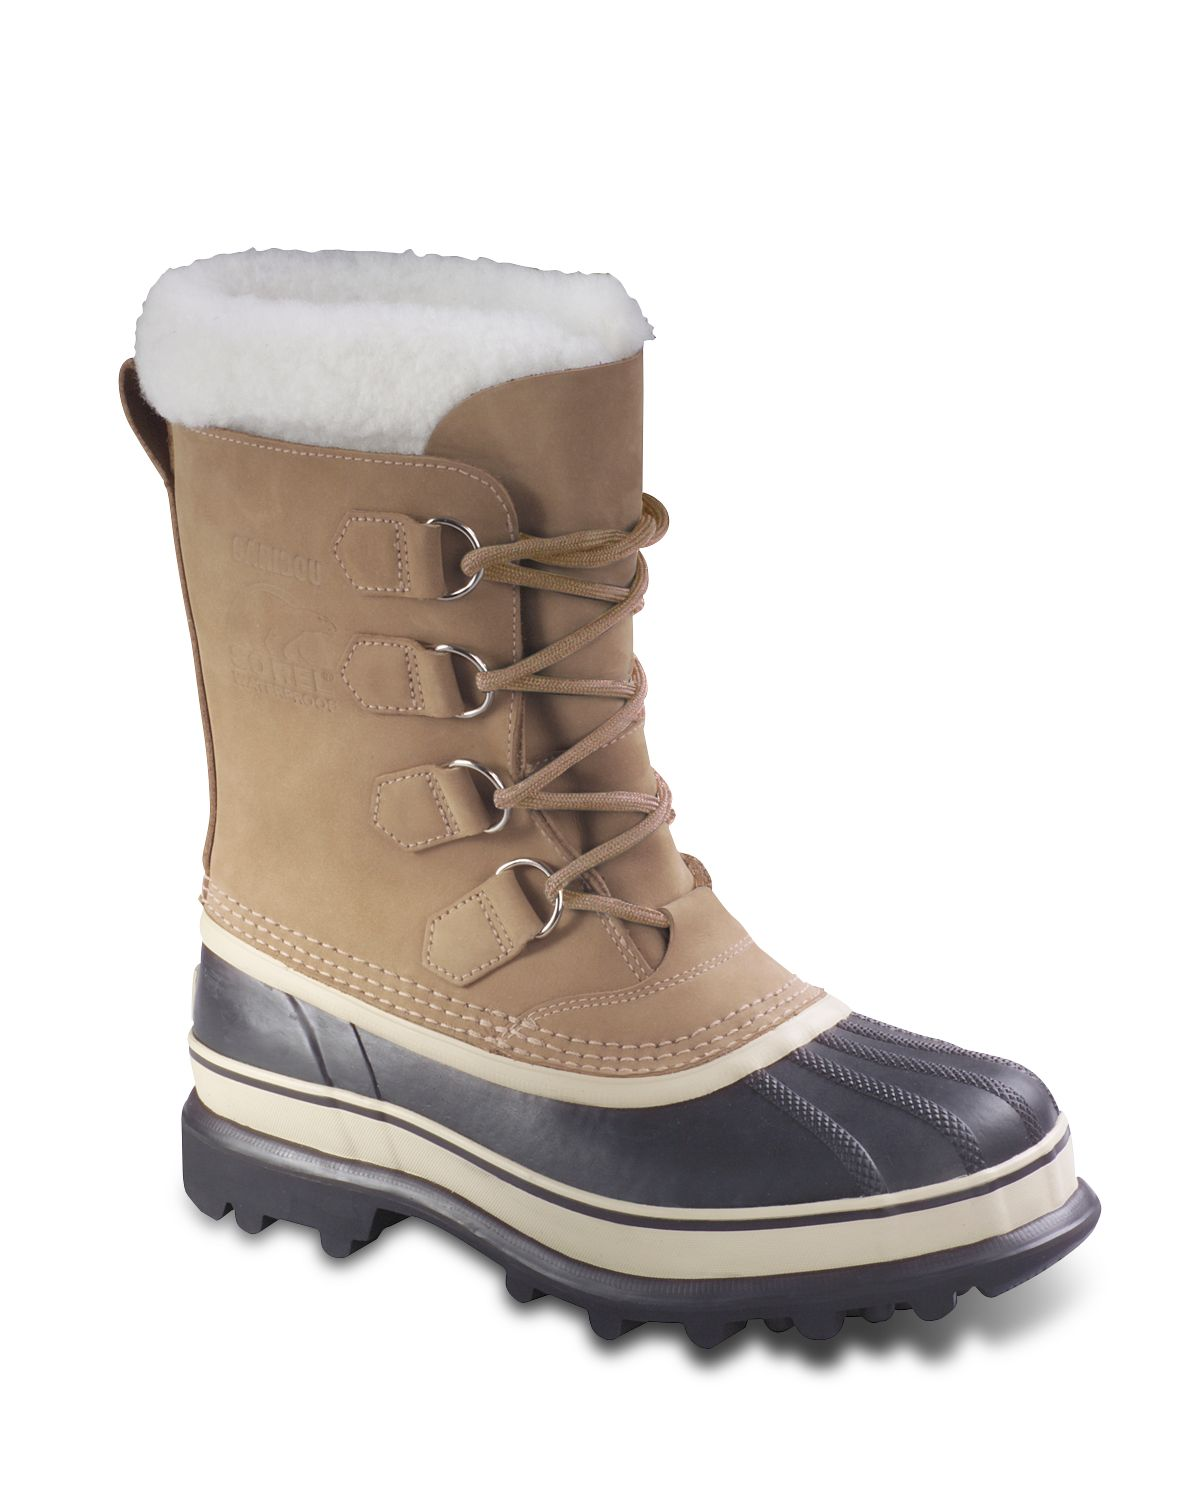 Lyst Sorel Womens Caribou Snow Boots In Natural